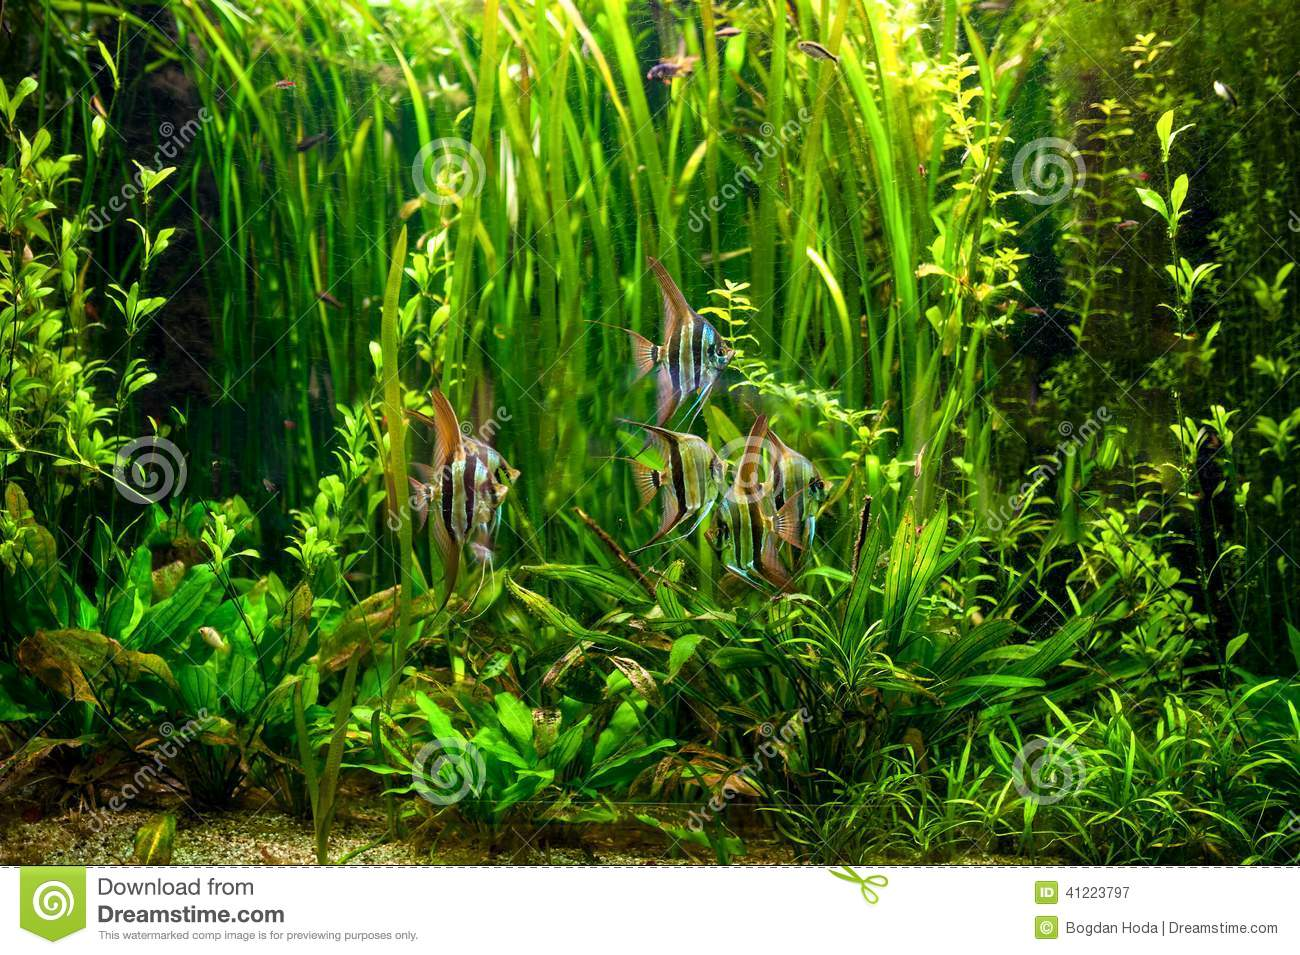 Undewater green alga aquatic plants and fishes stock for Underwater pond plants